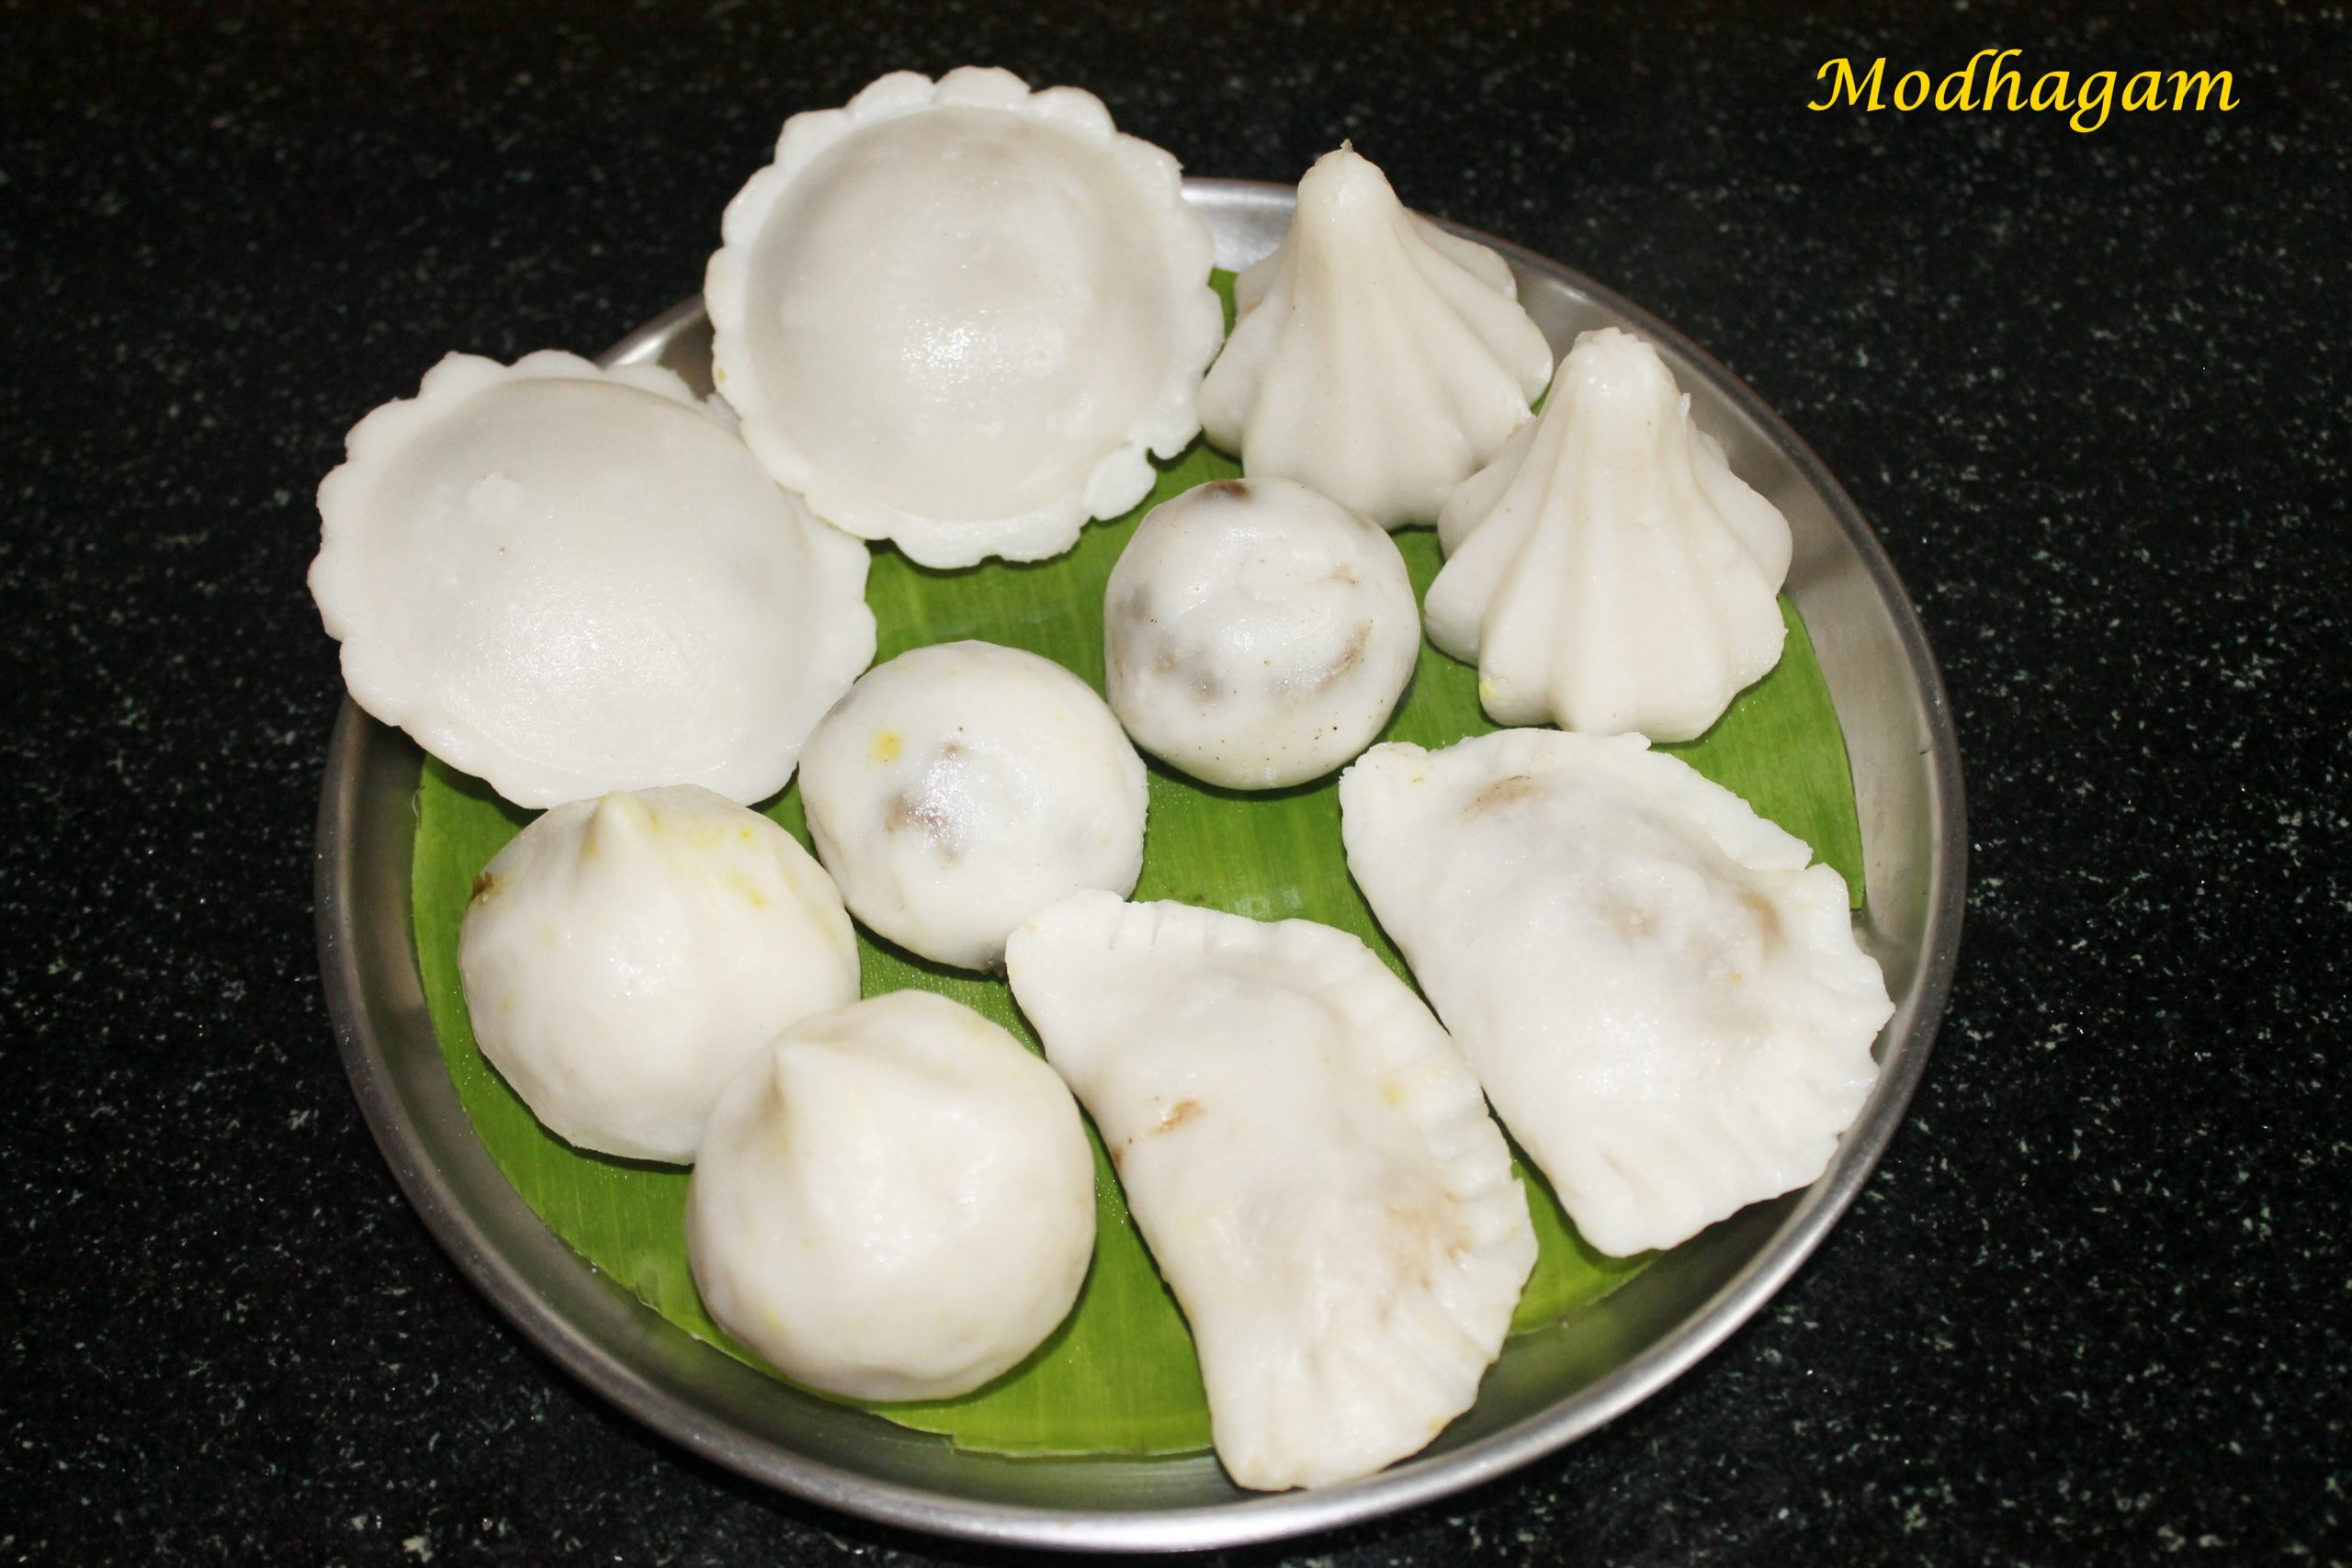 Modhagam recipe